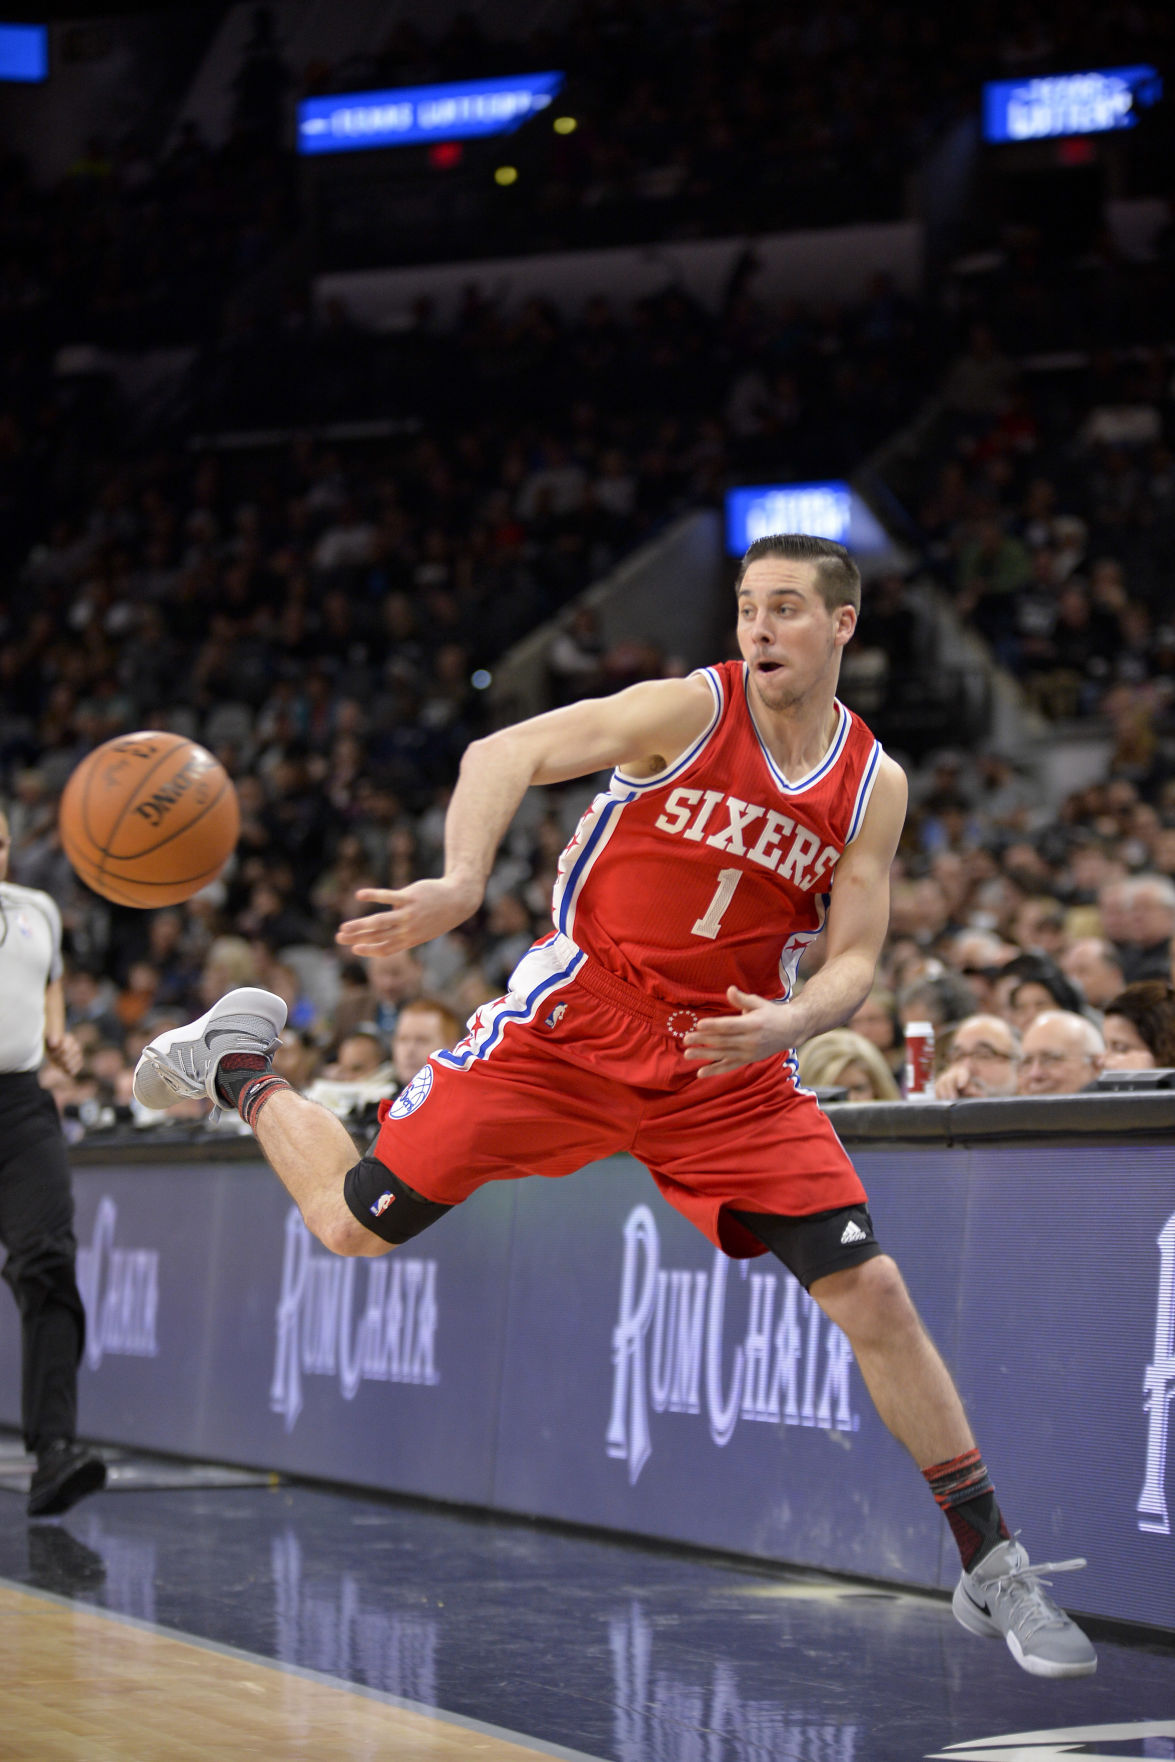 Ex-Wildcat watch: T.J. McConnell posts 10 points, 7 rebounds; D-Will waived | Wildcats | tucson.com